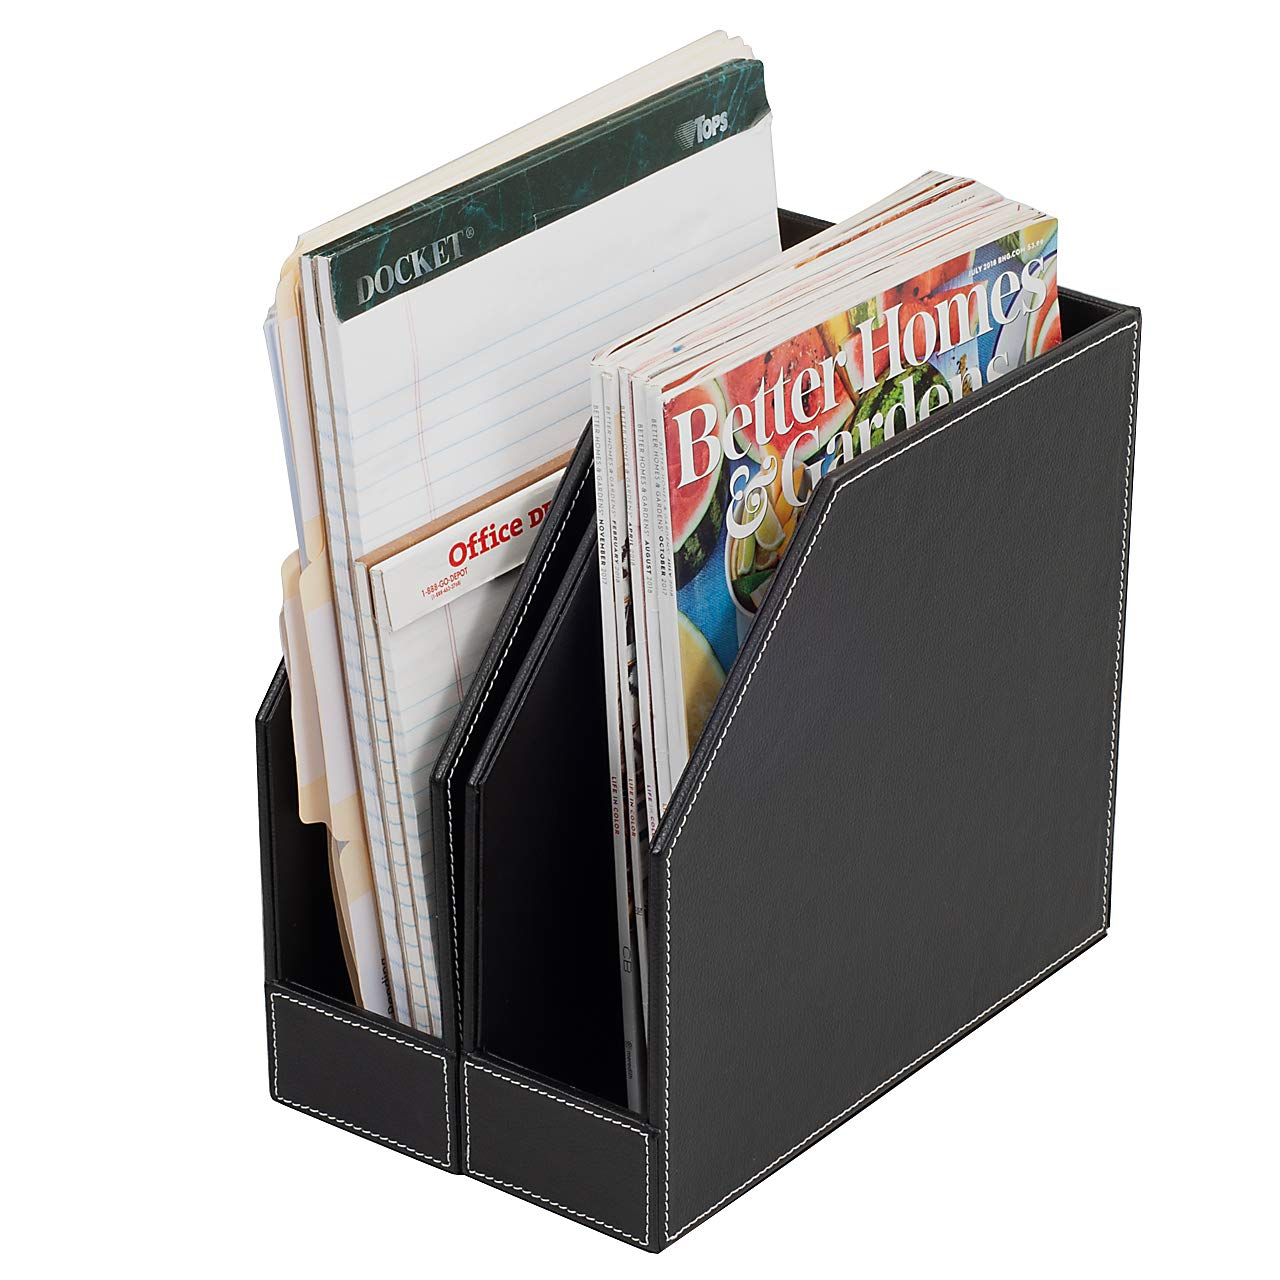 Executive PU Leather Vertical File Folder Holder & Office Product Organizer, Store Files, Magazines, Notepads, Books and More, 2 Pack Combo Set by MobileVision